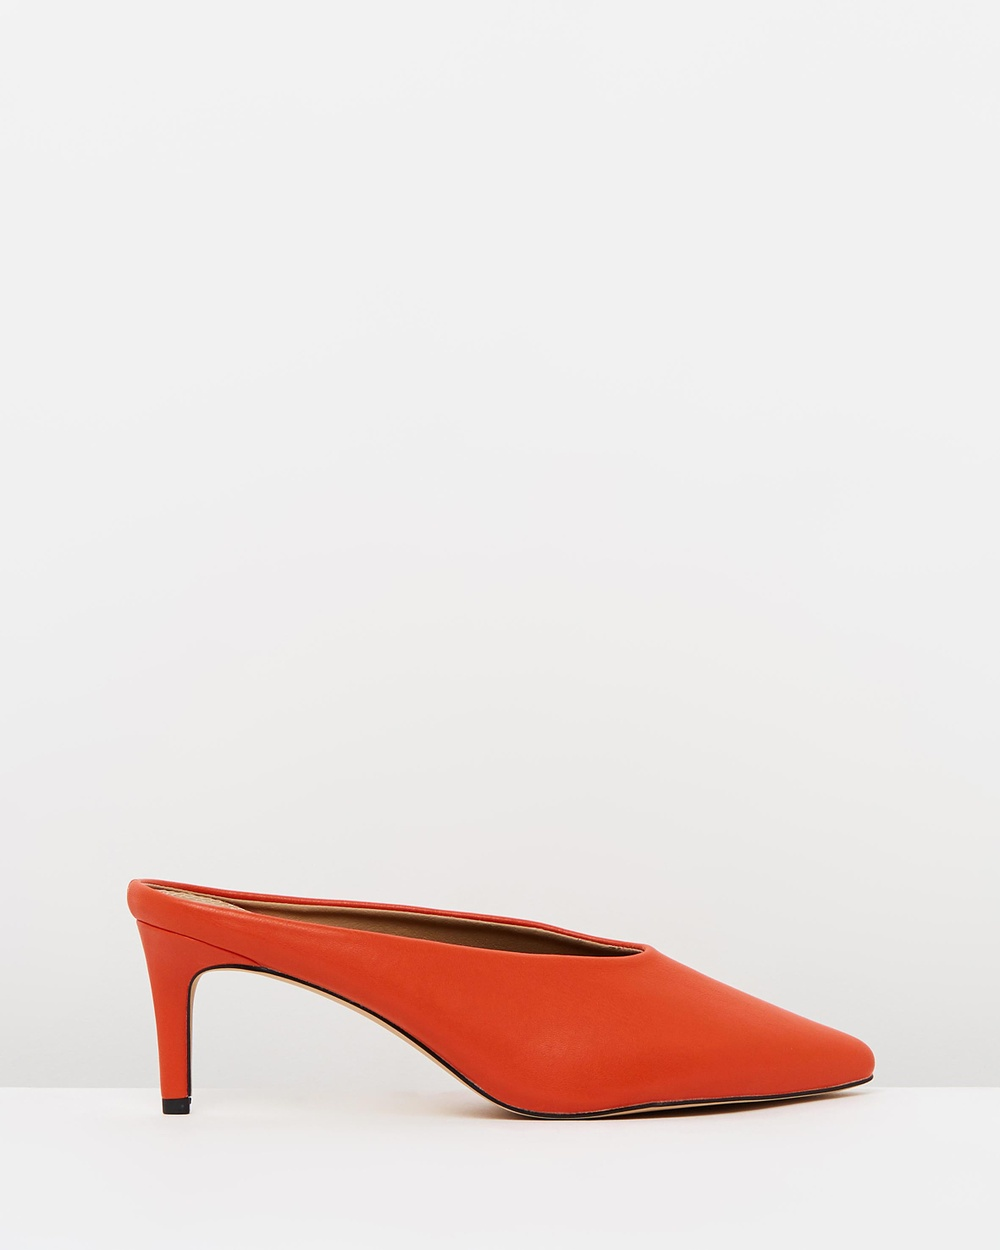 SPURR ICONIC EXCLUSIVE Olly Kitten Heel Mules Mid-low heels Red Smooth ICONIC EXCLUSIVE Olly Kitten Heel Mules